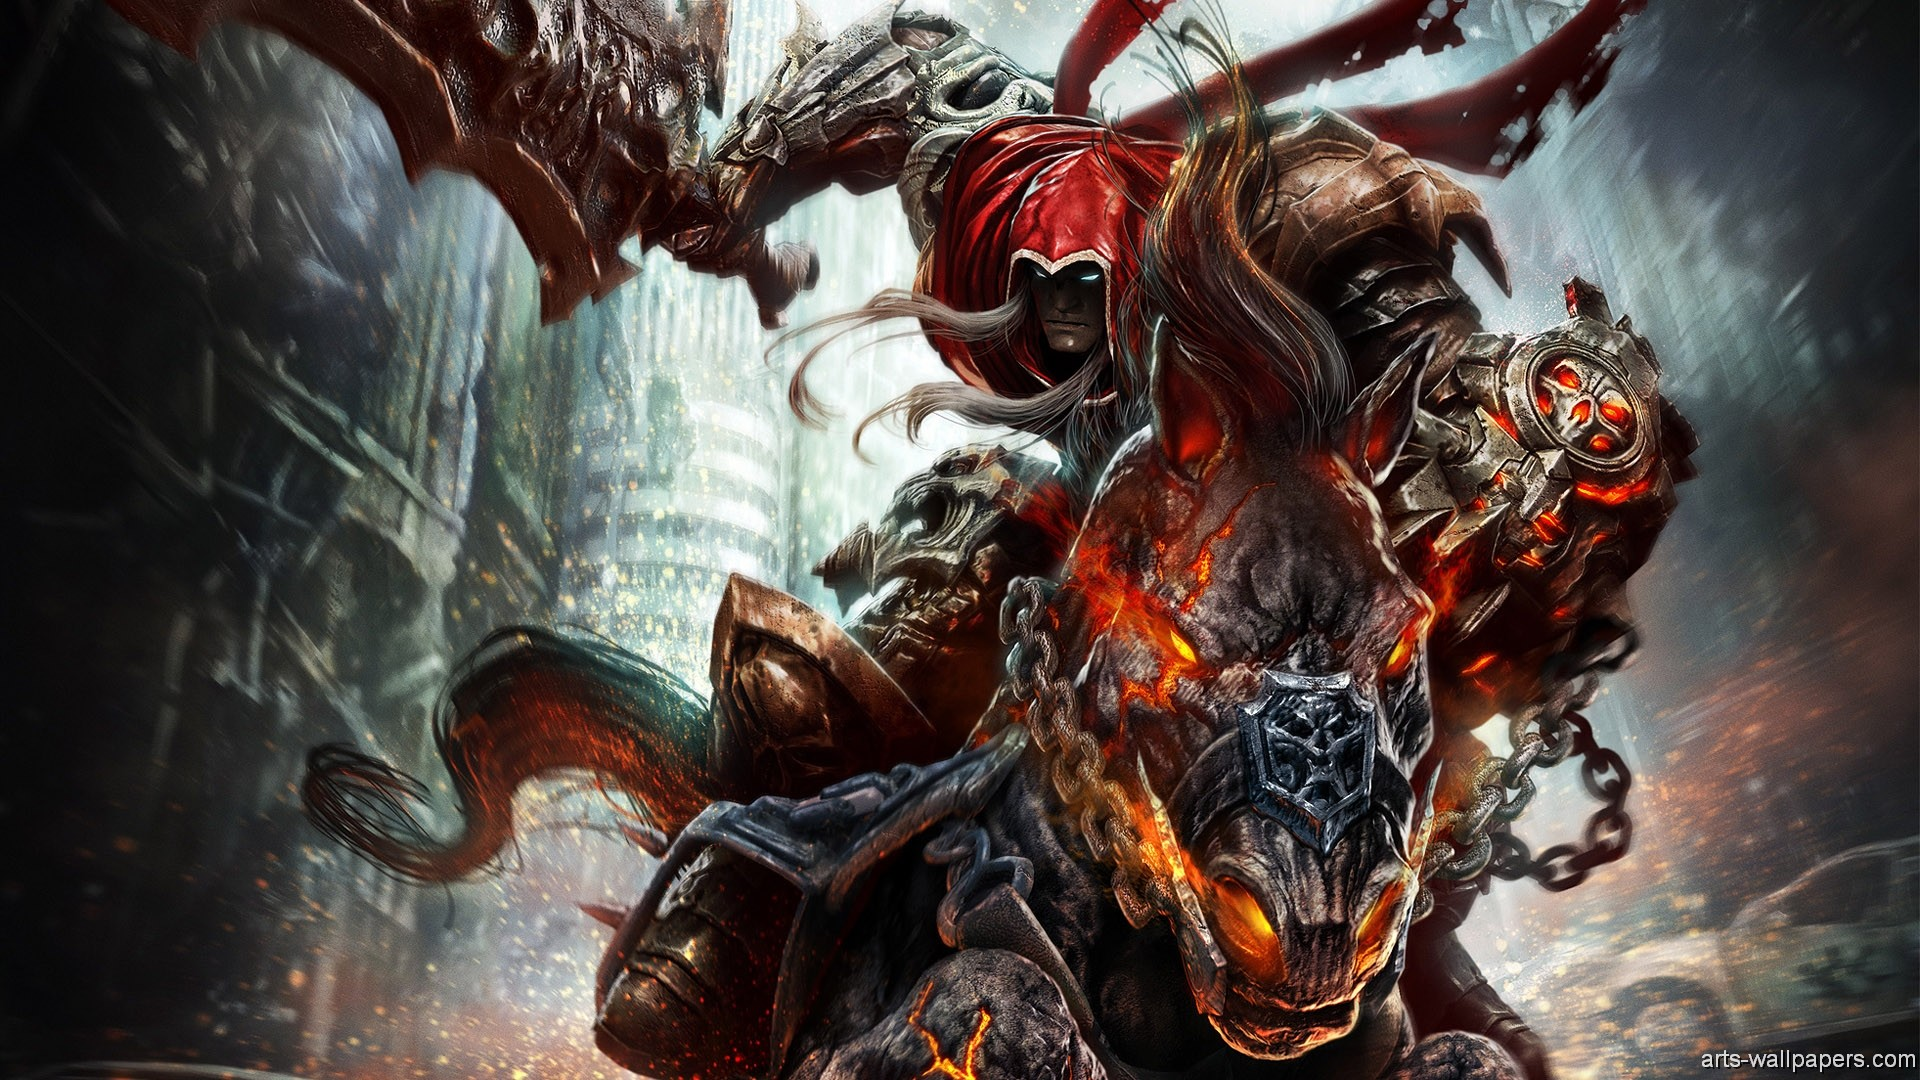 hd game wallpapers 1080p ·①